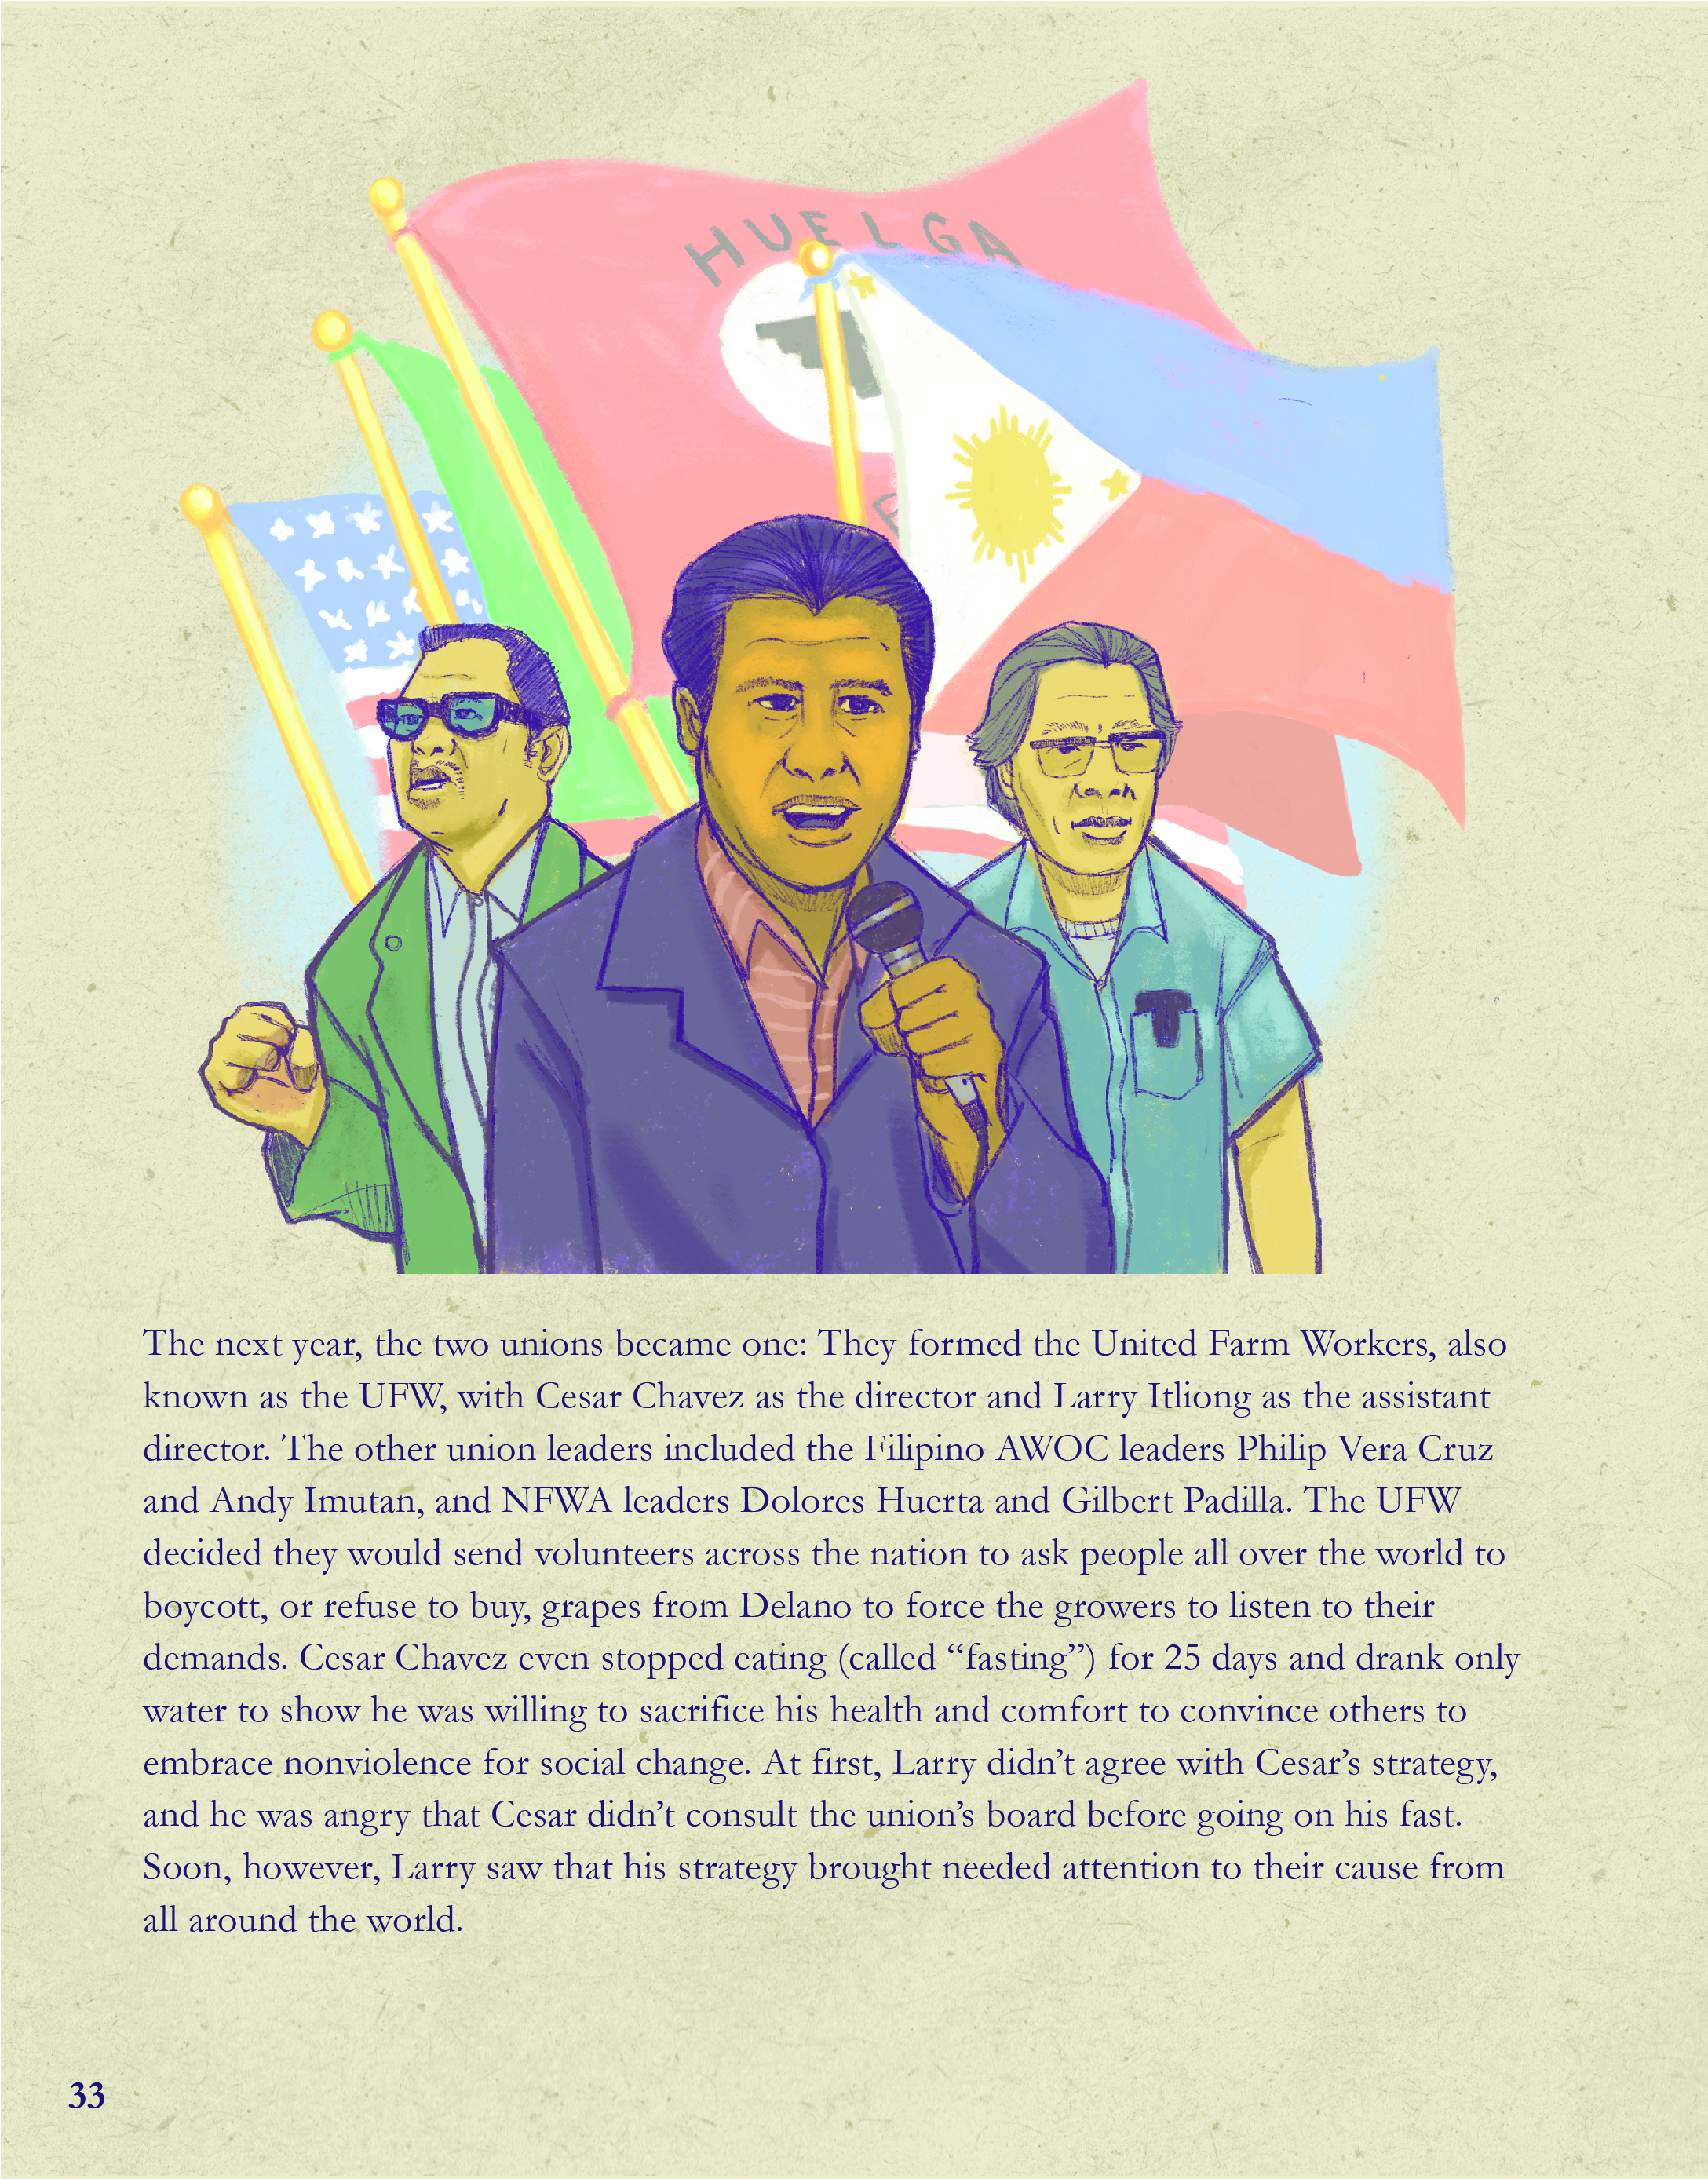 A page from Journey For Justice: The Life of Larry Itliong. Illustrated by André Sibayan.